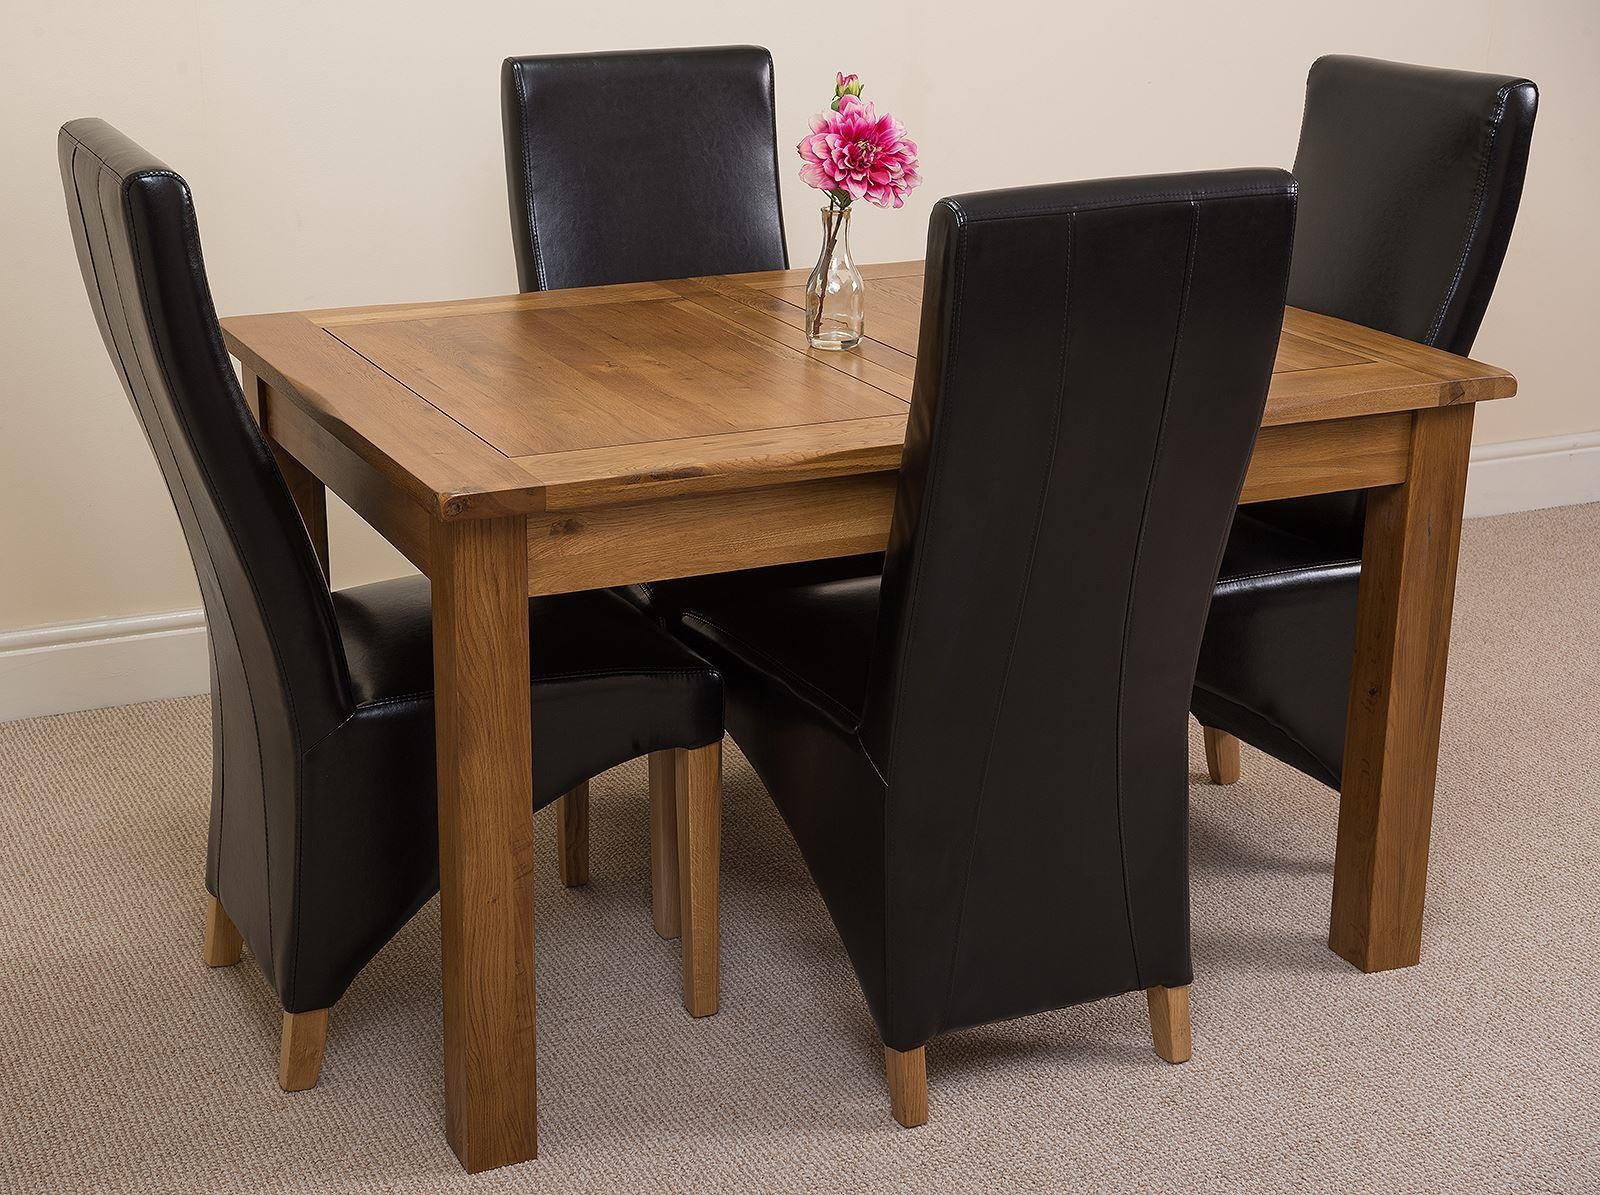 Cotswold Rustic Solid Oak 132cm-198cm Extending Farmhouse Dining Table with 4 Lola Dining Chairs [Black Leather]